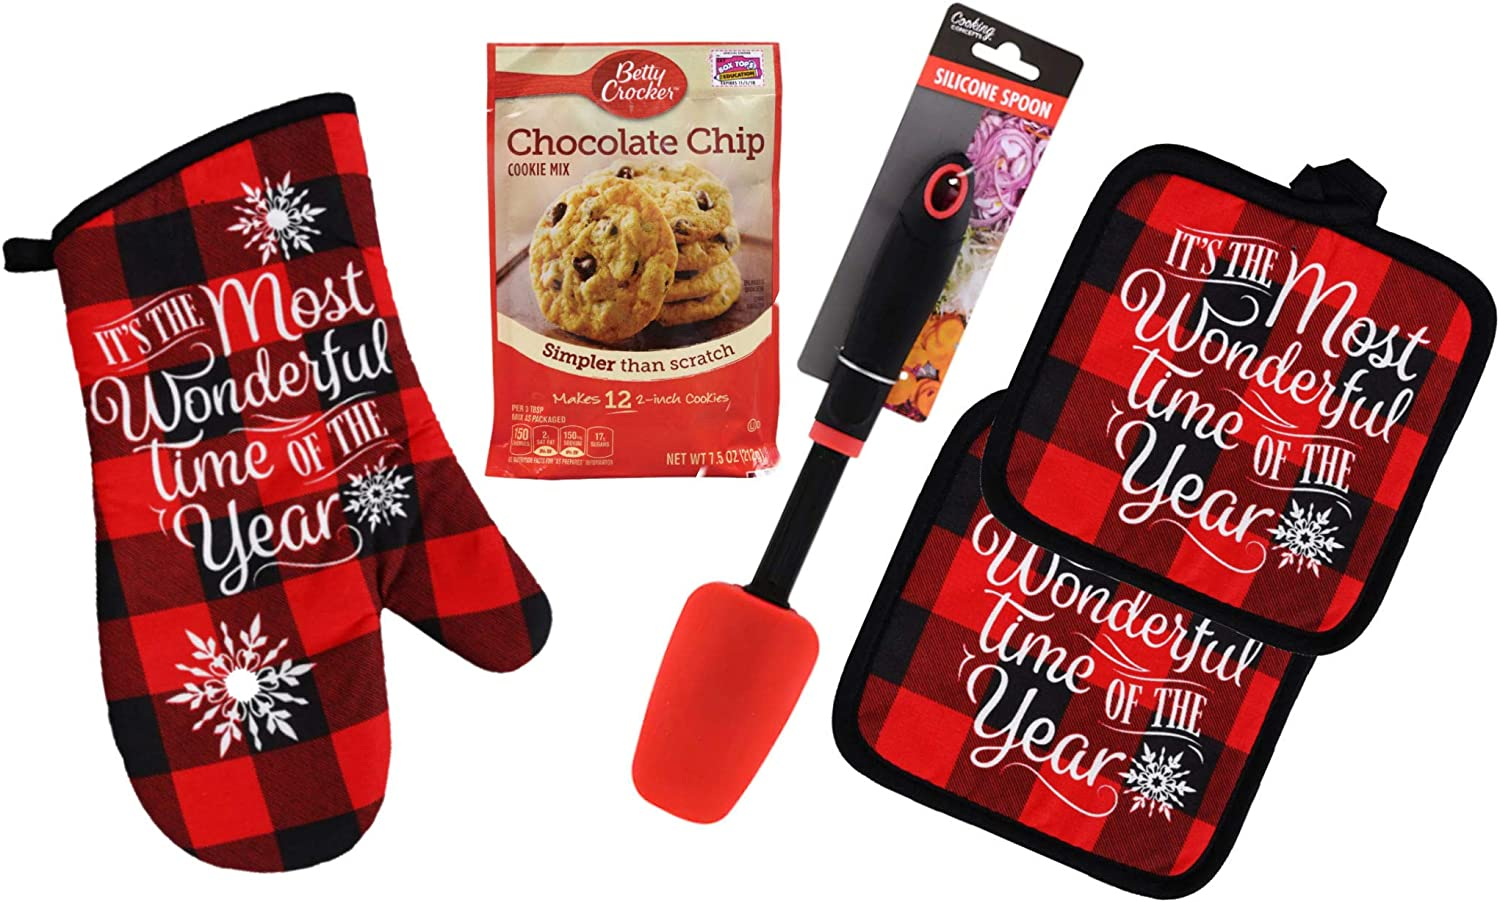 Buffalo Check Kitchen Pot Holders and Oven Mitt Set with Brownie Mix and Spatula - Red & Black Plaid - Modern Farmhouse Decor Set (Most Wonderful Time of The Year)